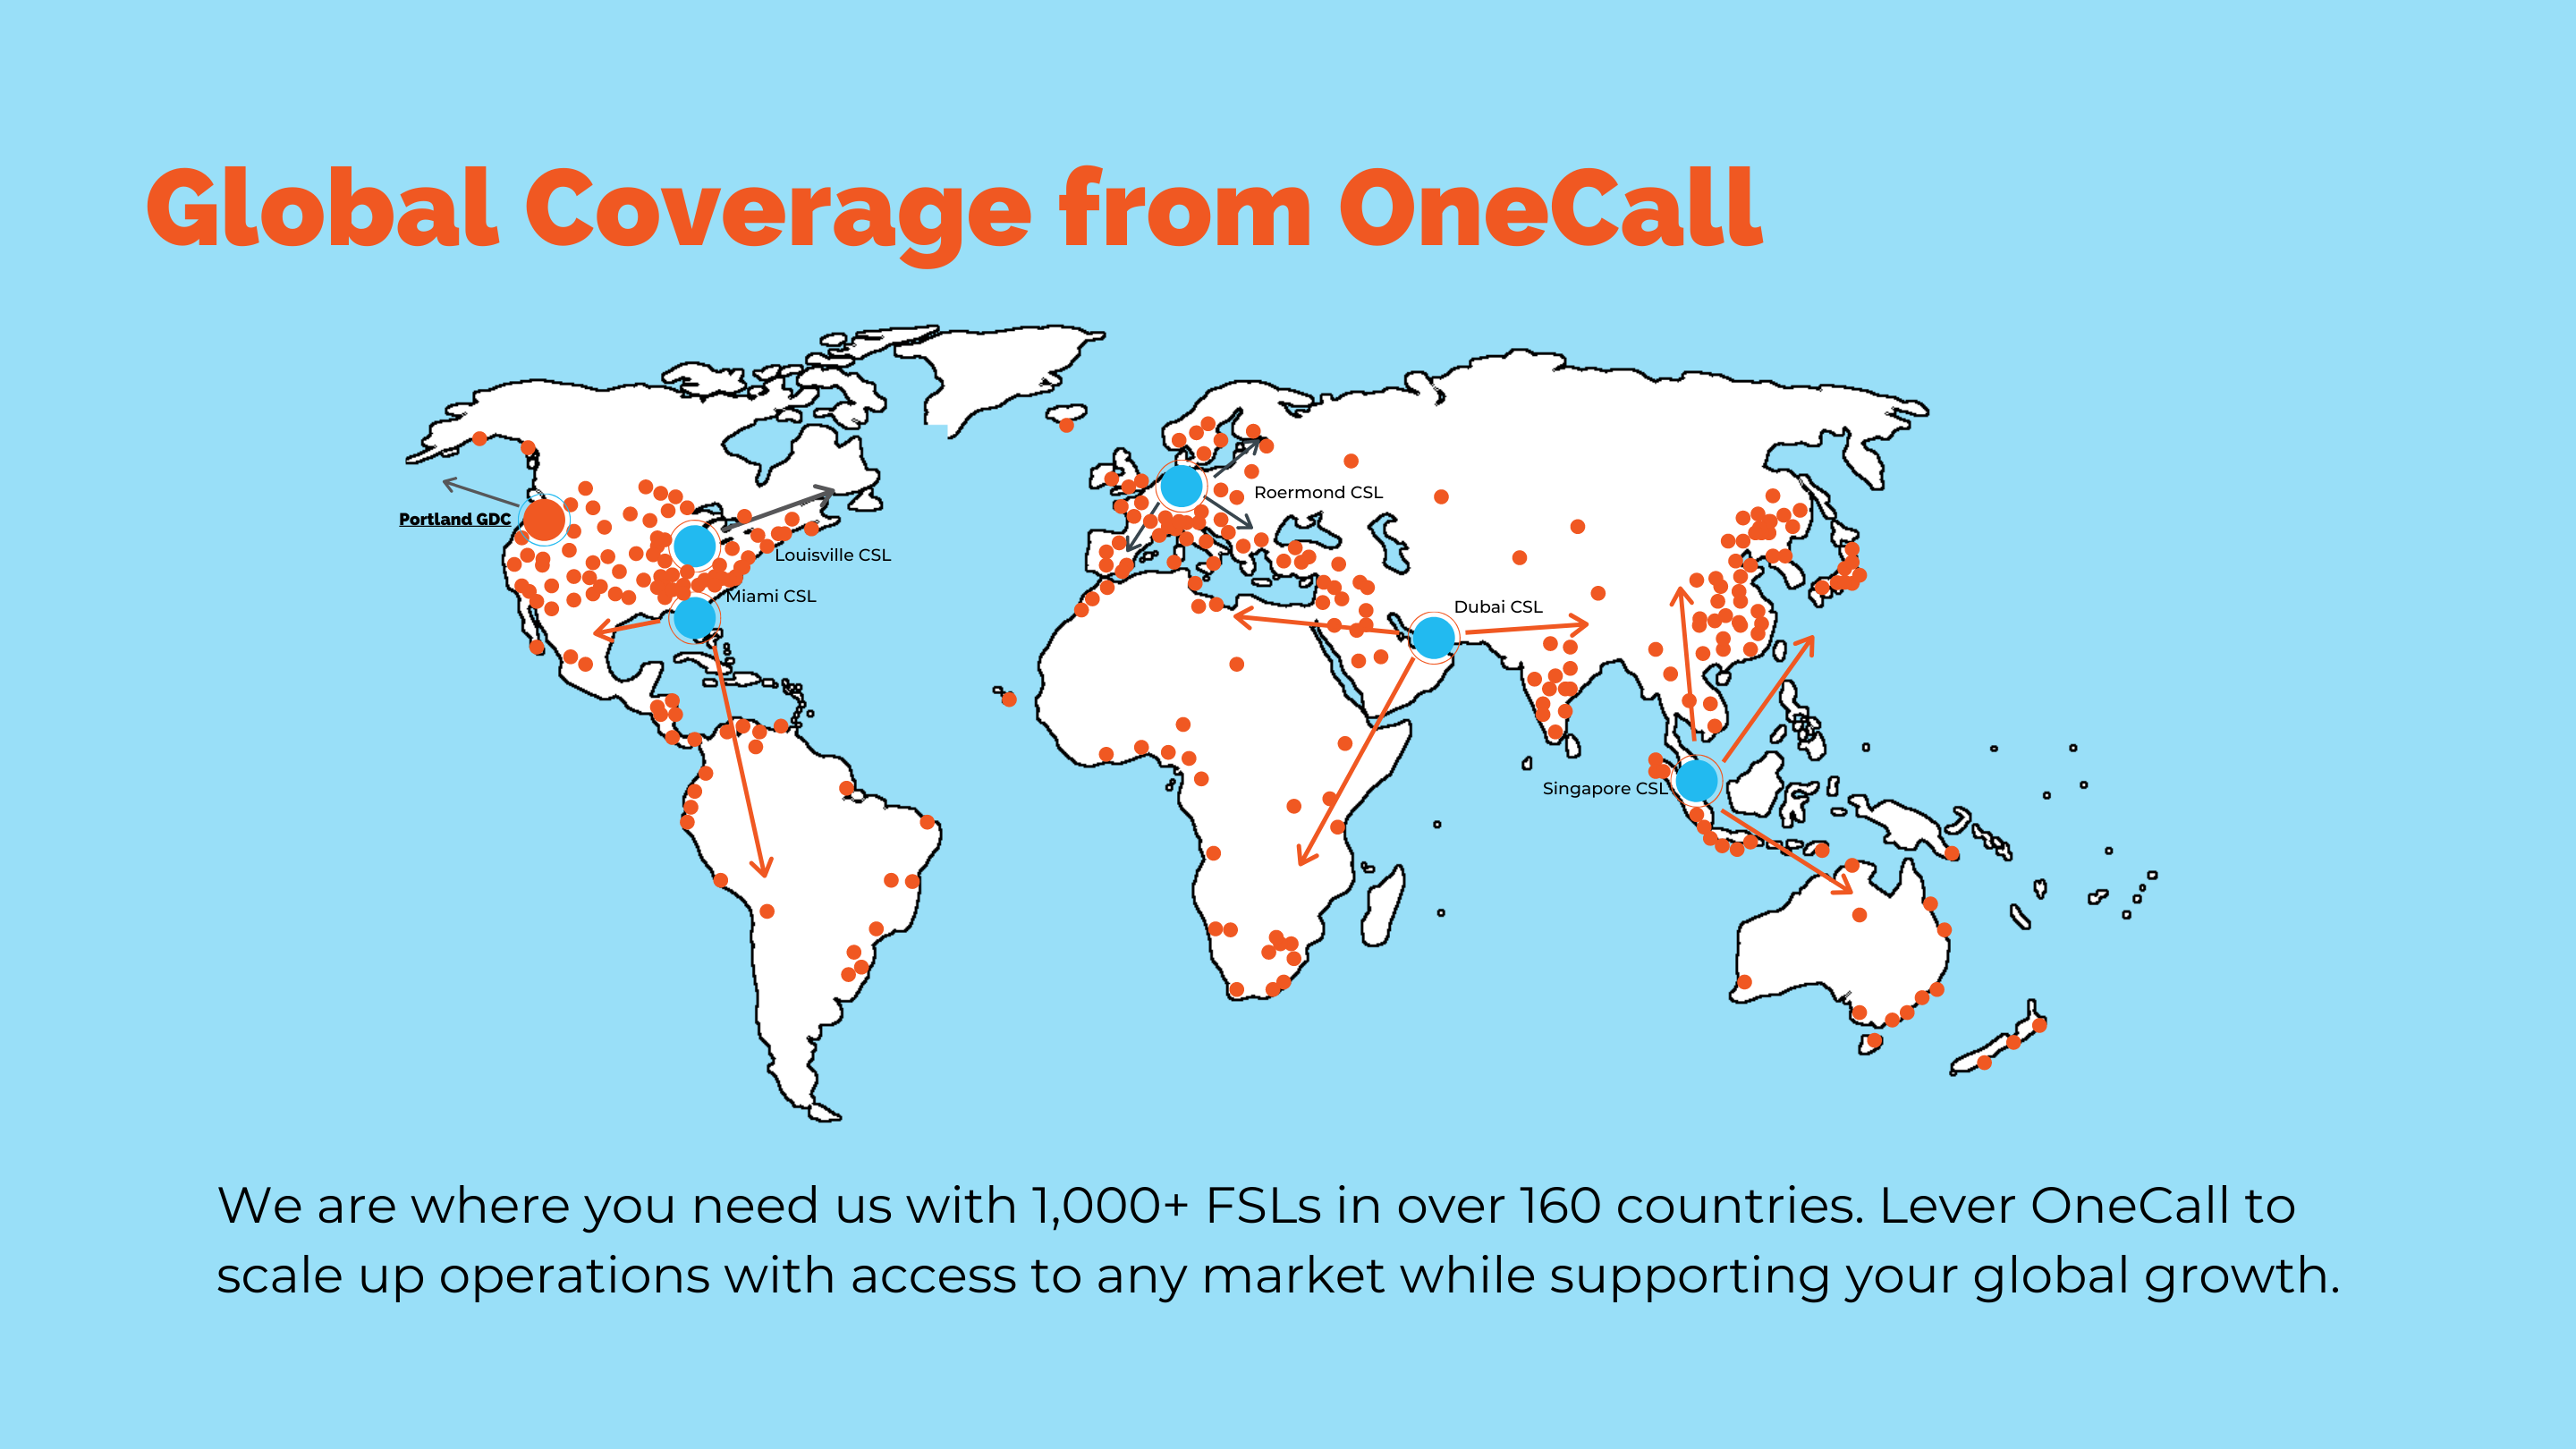 onecall-global-coverage-blue